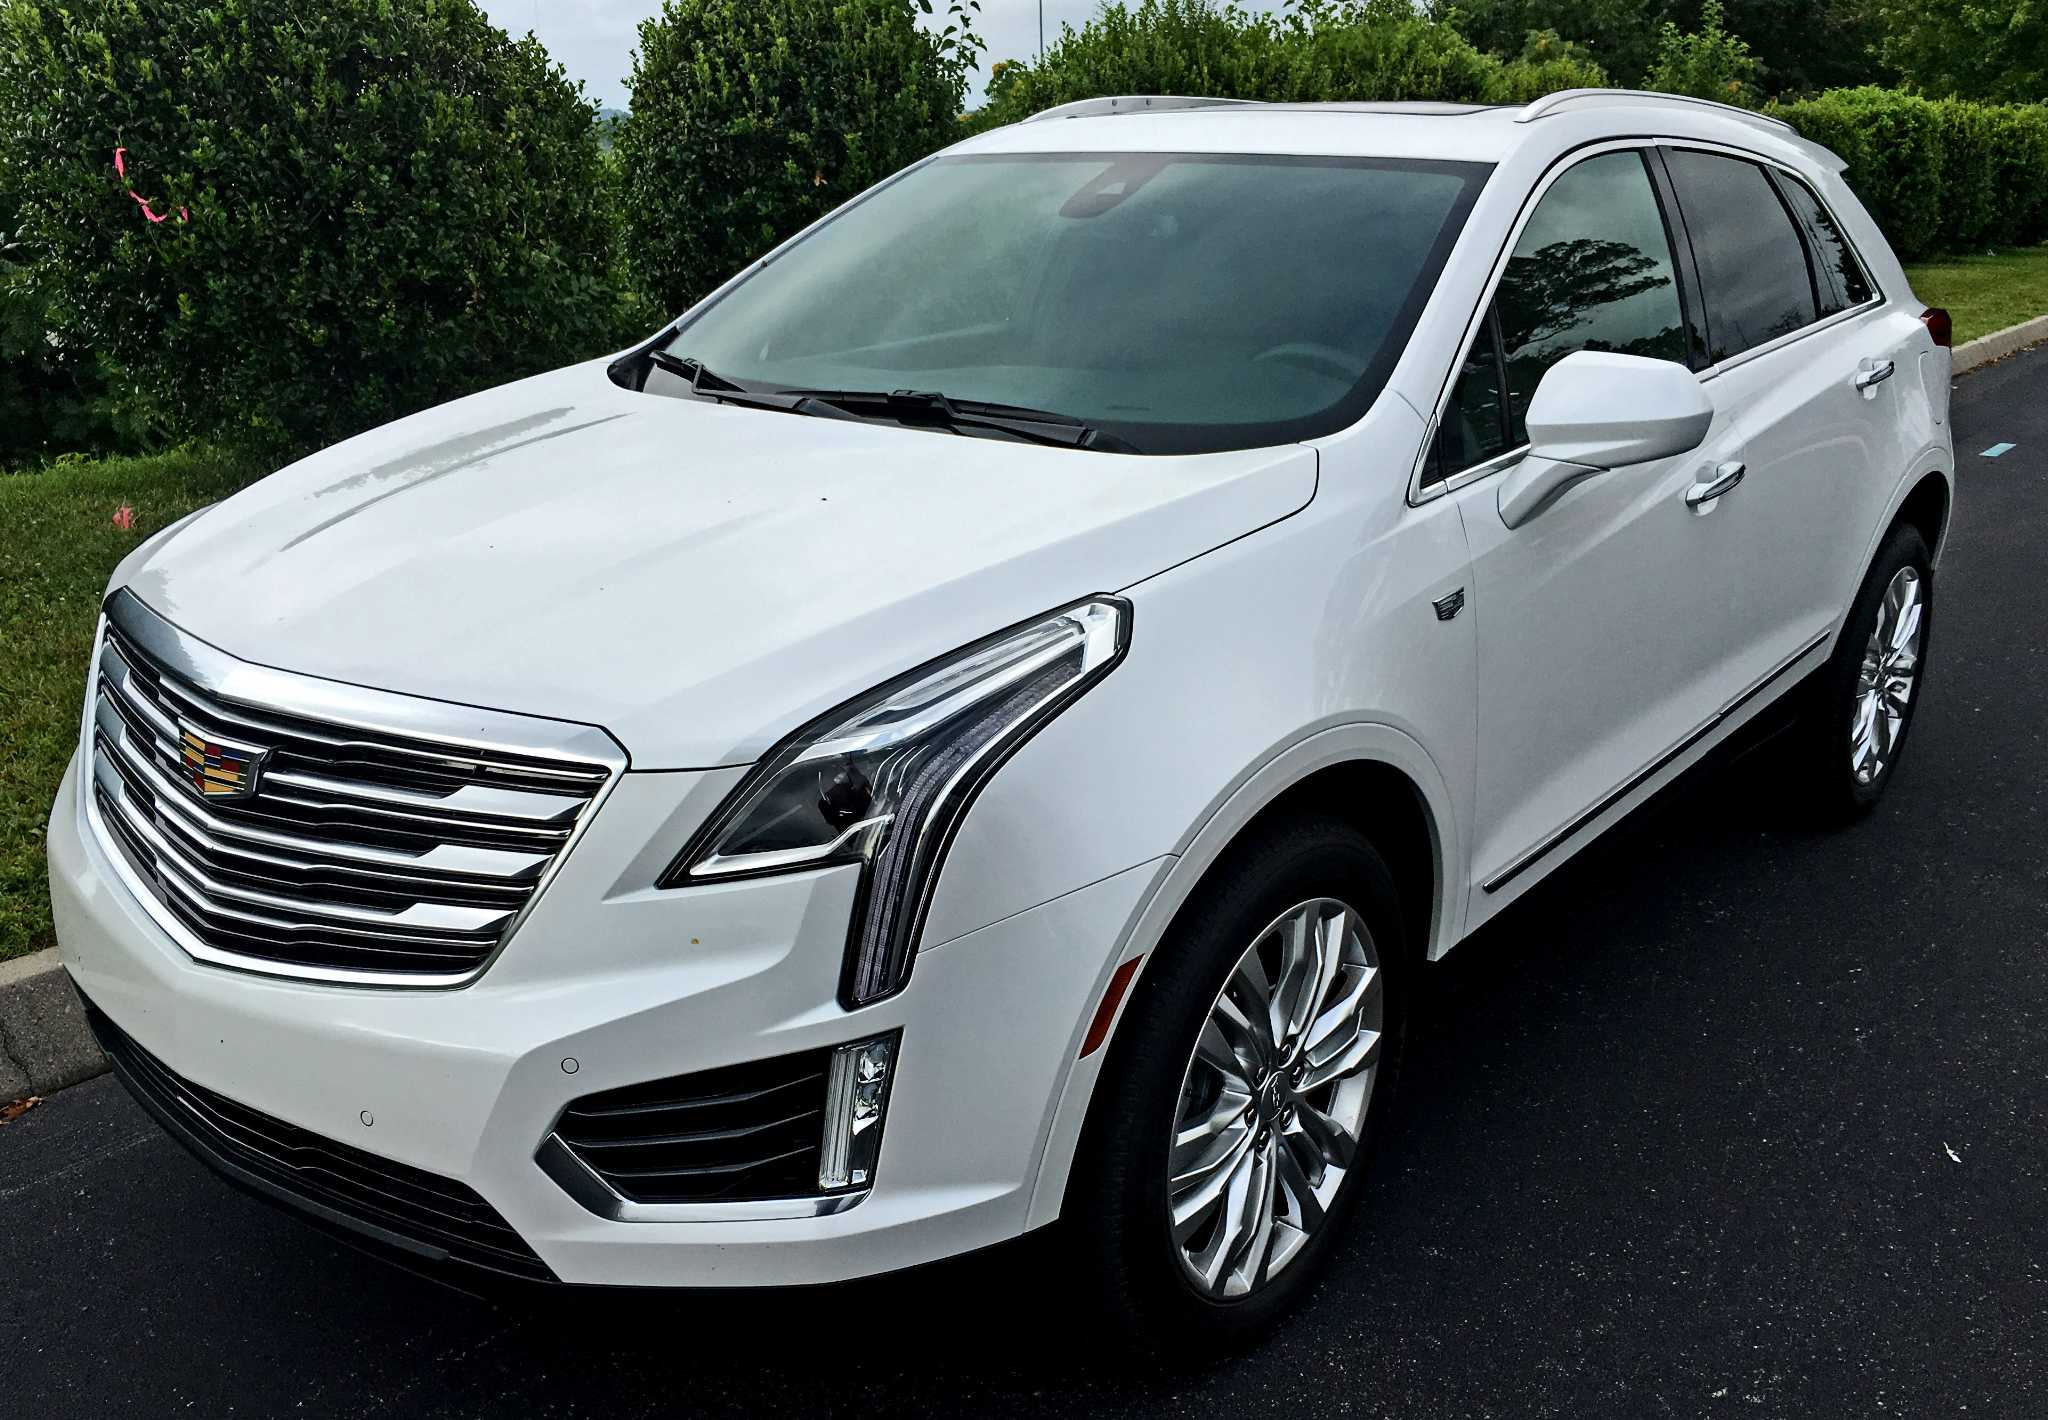 CADILLAC XT5: Midsize crossover comes with room for five, prices from $39,395